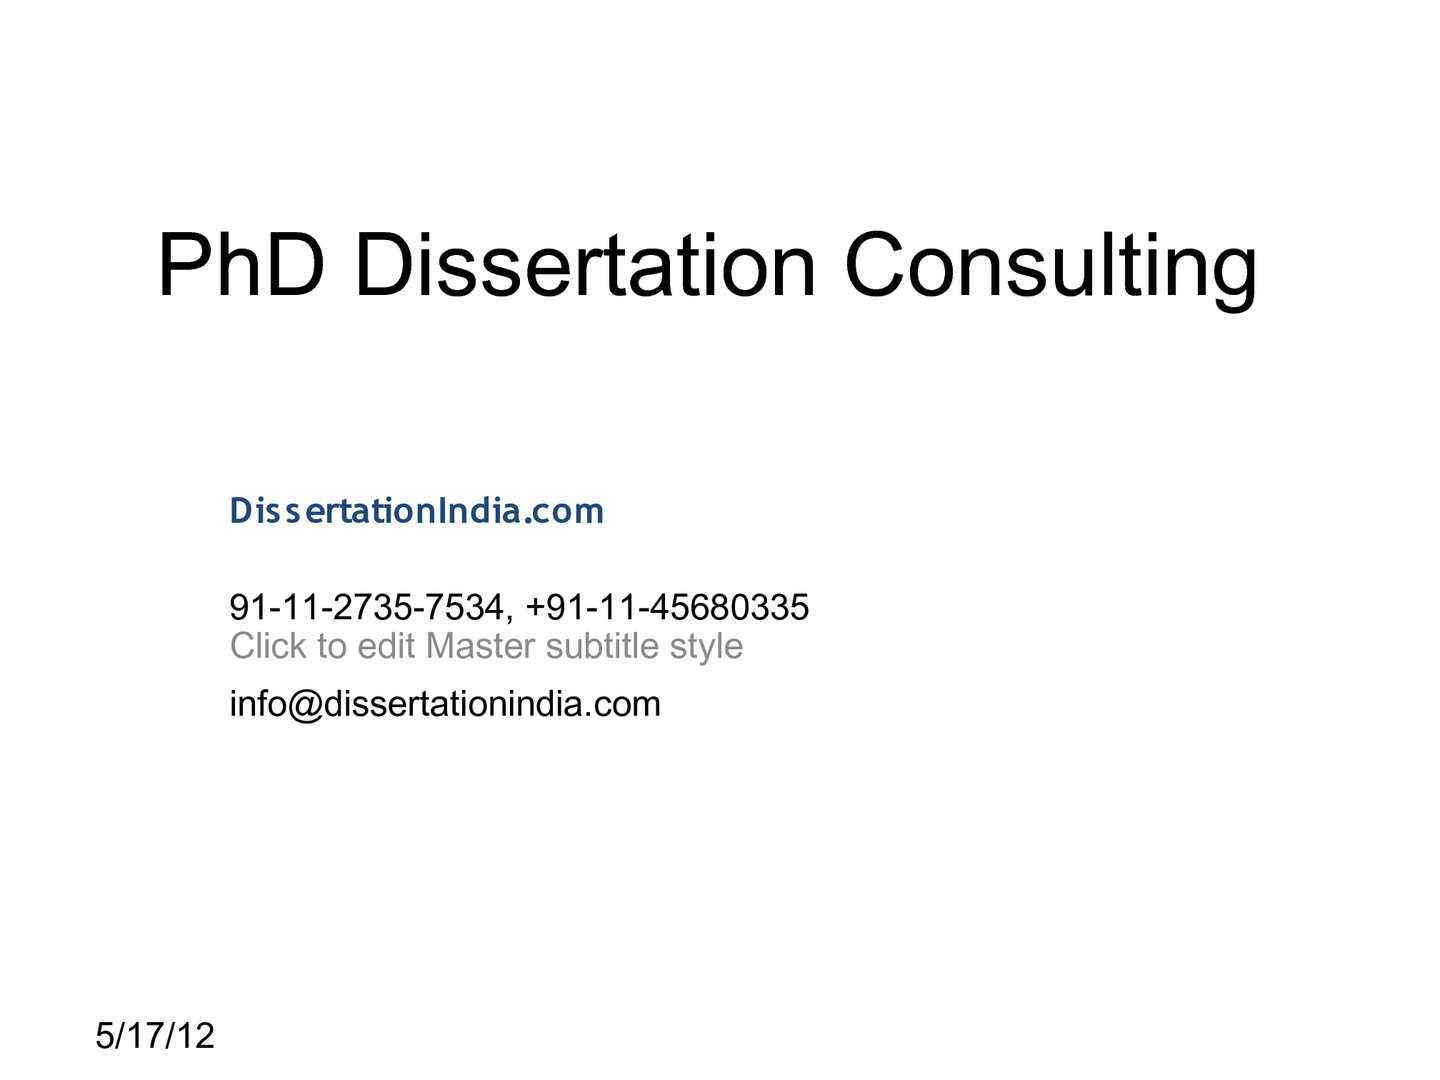 Dissertation consulting cute letter writing paper